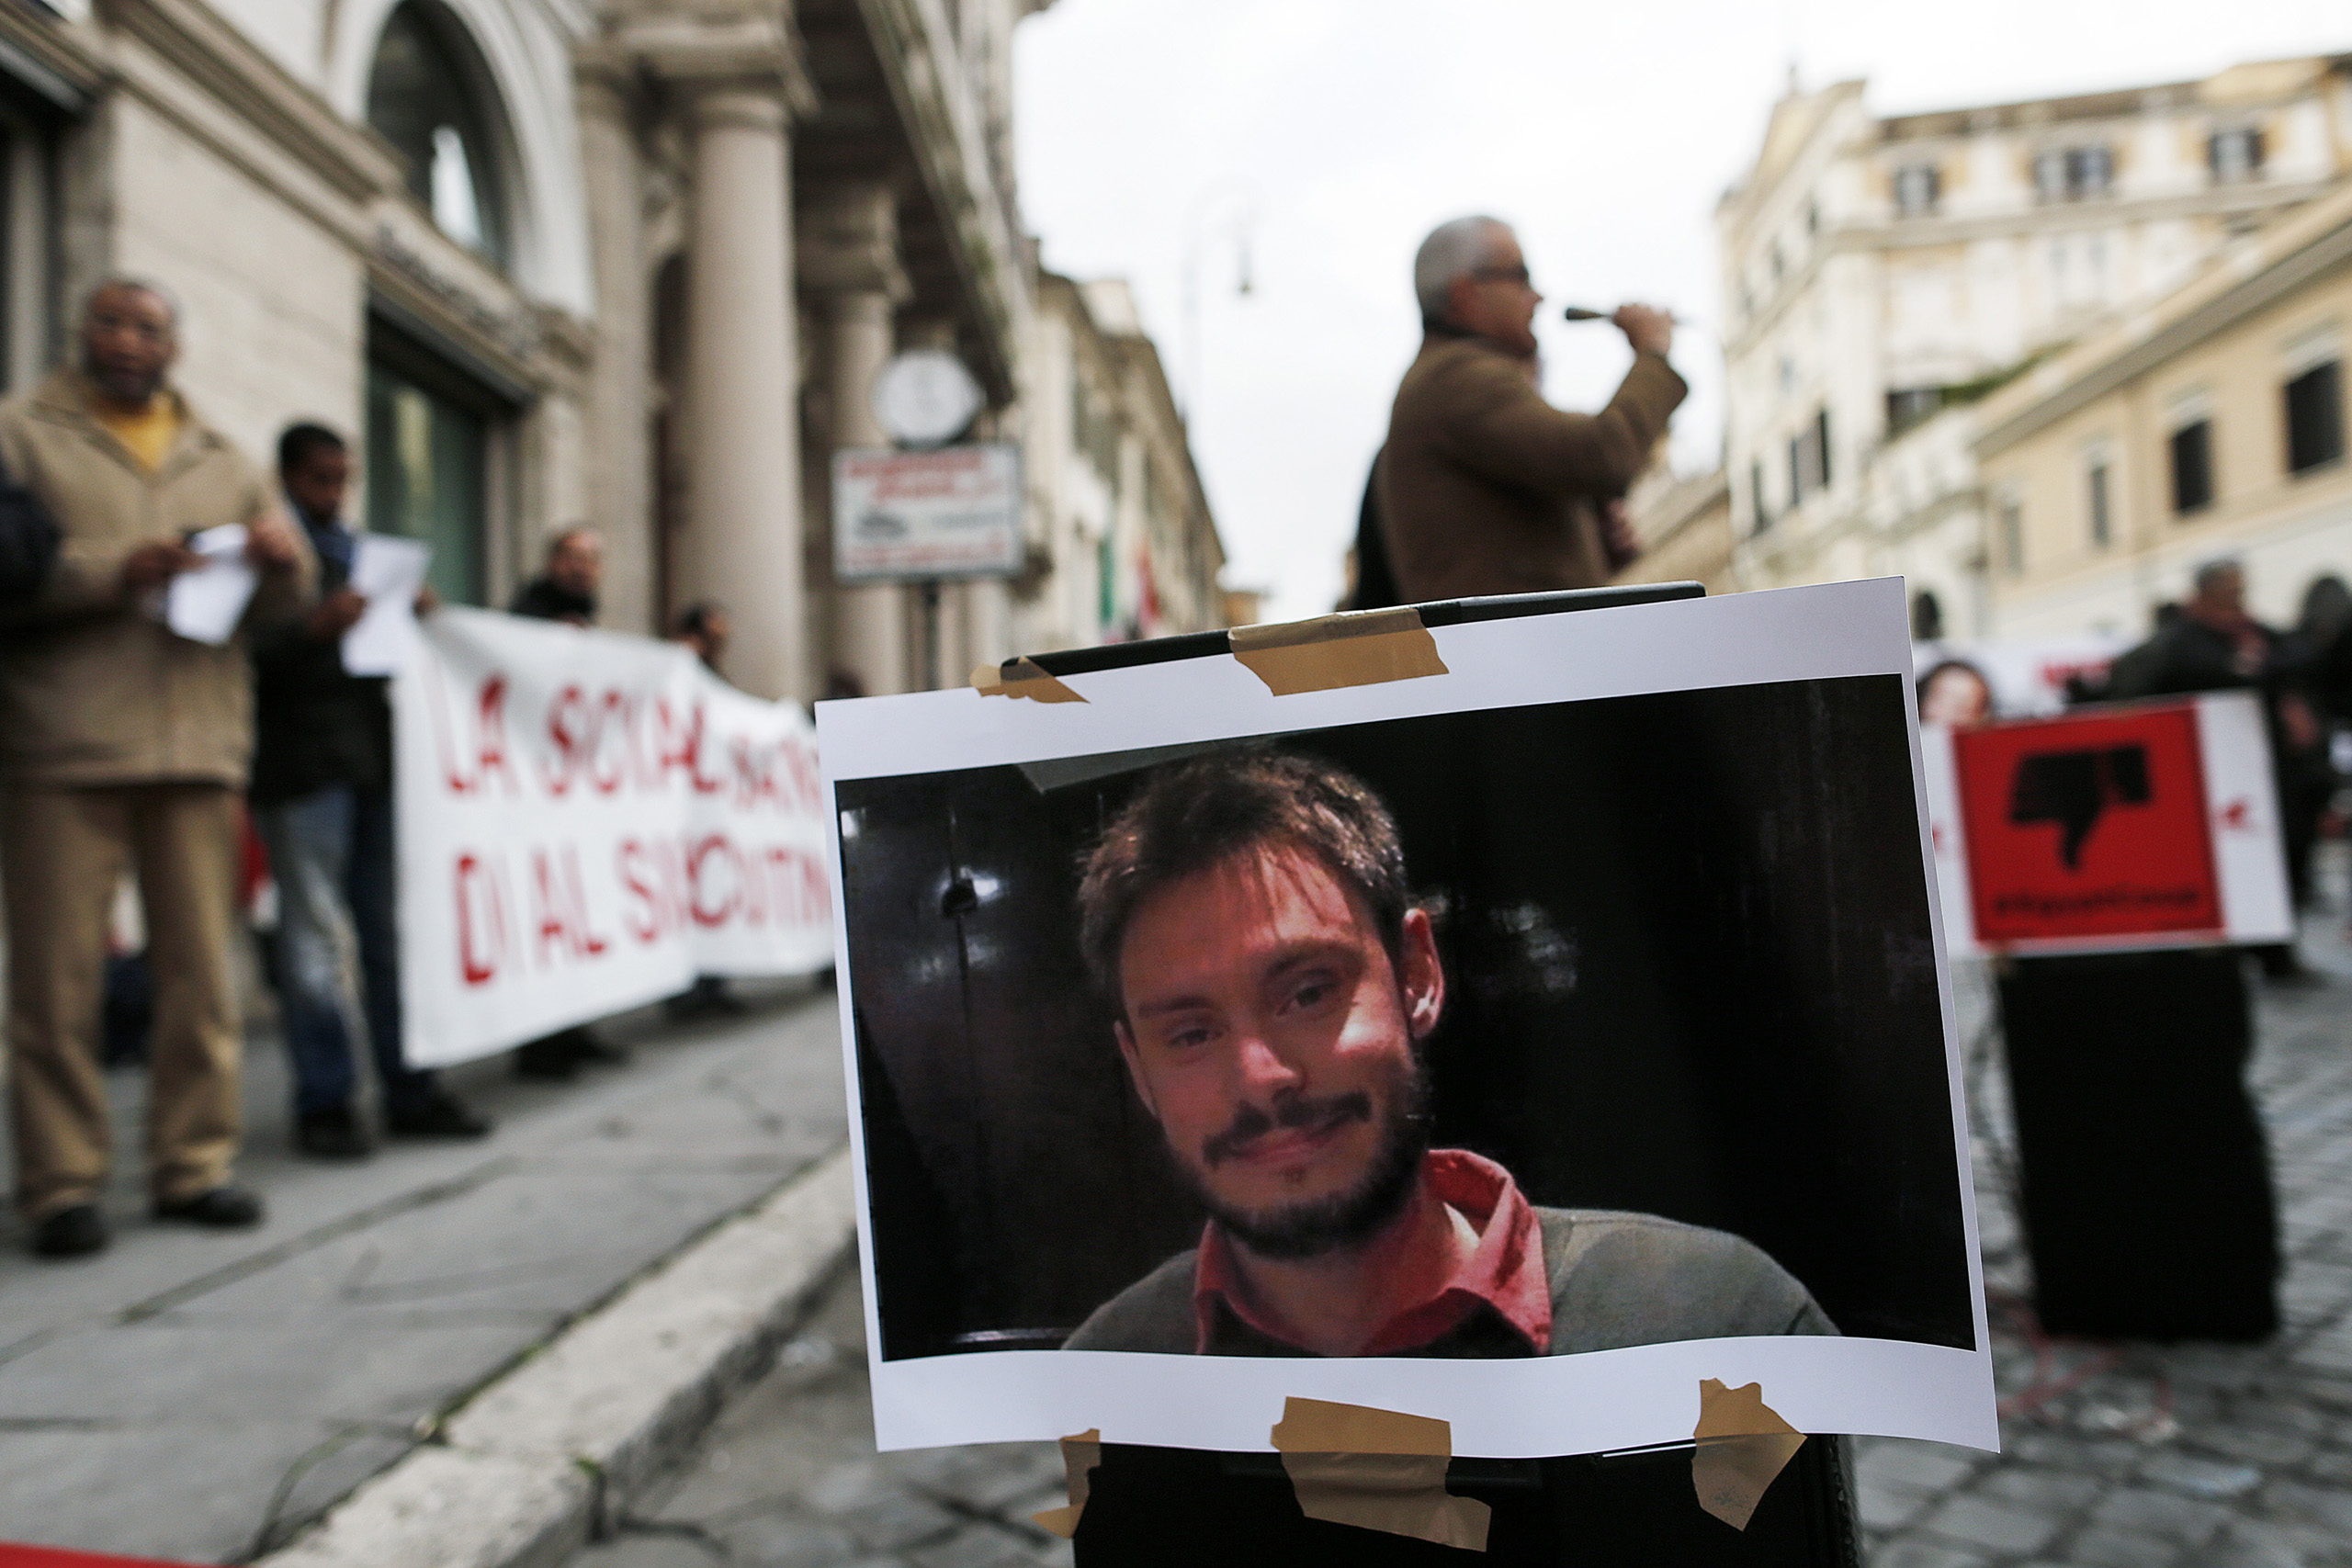 The demonstration in Rome's Piazza Santi Apostoli to demand justice for the death of Italian graduate student Giulio Regeni, who was found dead in Egypt, Feb. 13, 2016.